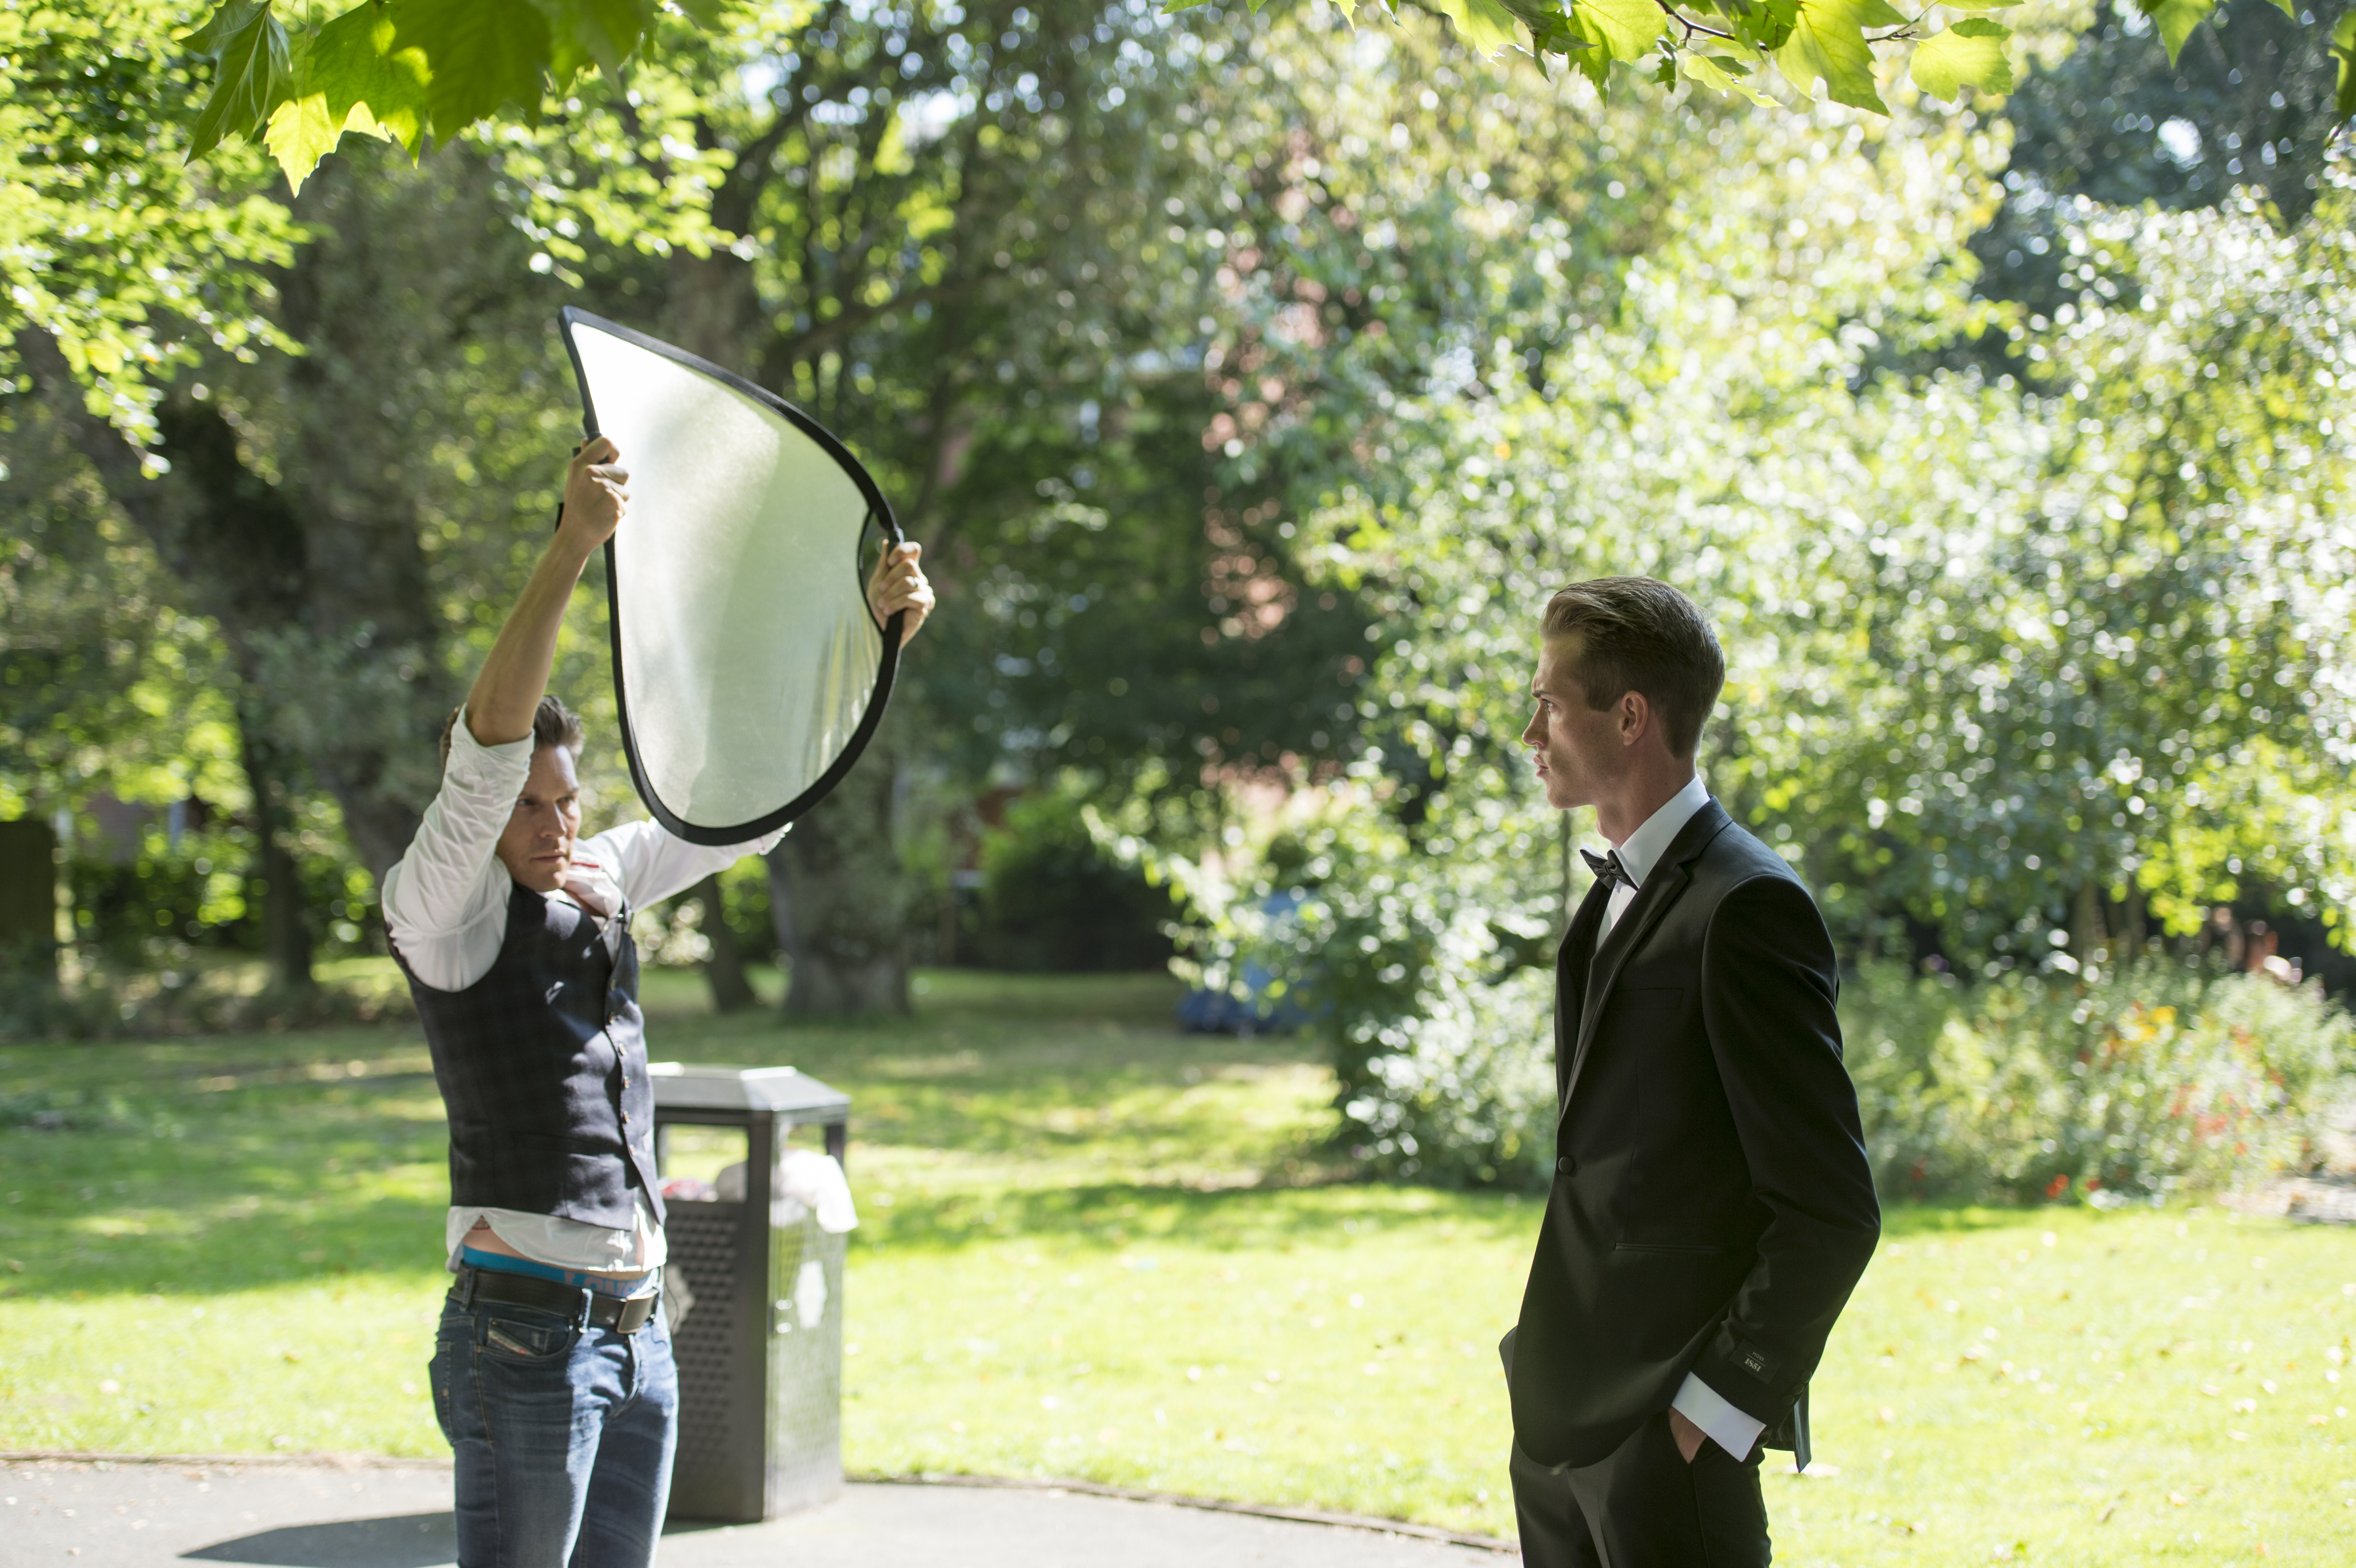 Did you know that a reflector can do this?